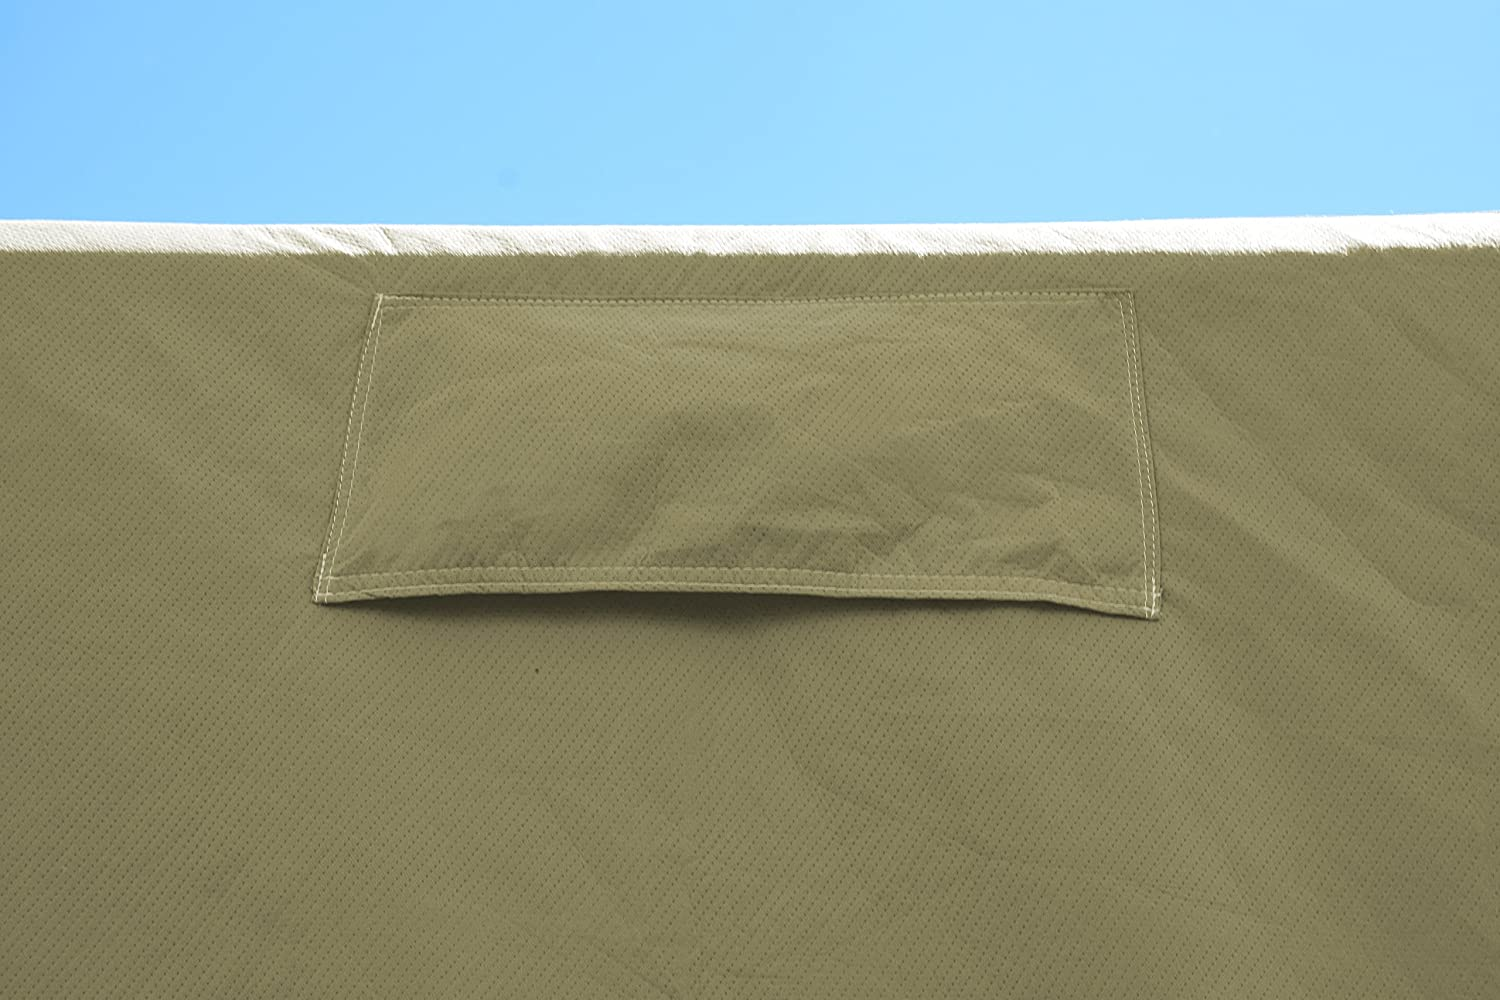 Fits 341-37 ADCO by Covercraft 74847 Storage Lot Cover for Travel Trailer RV Tan